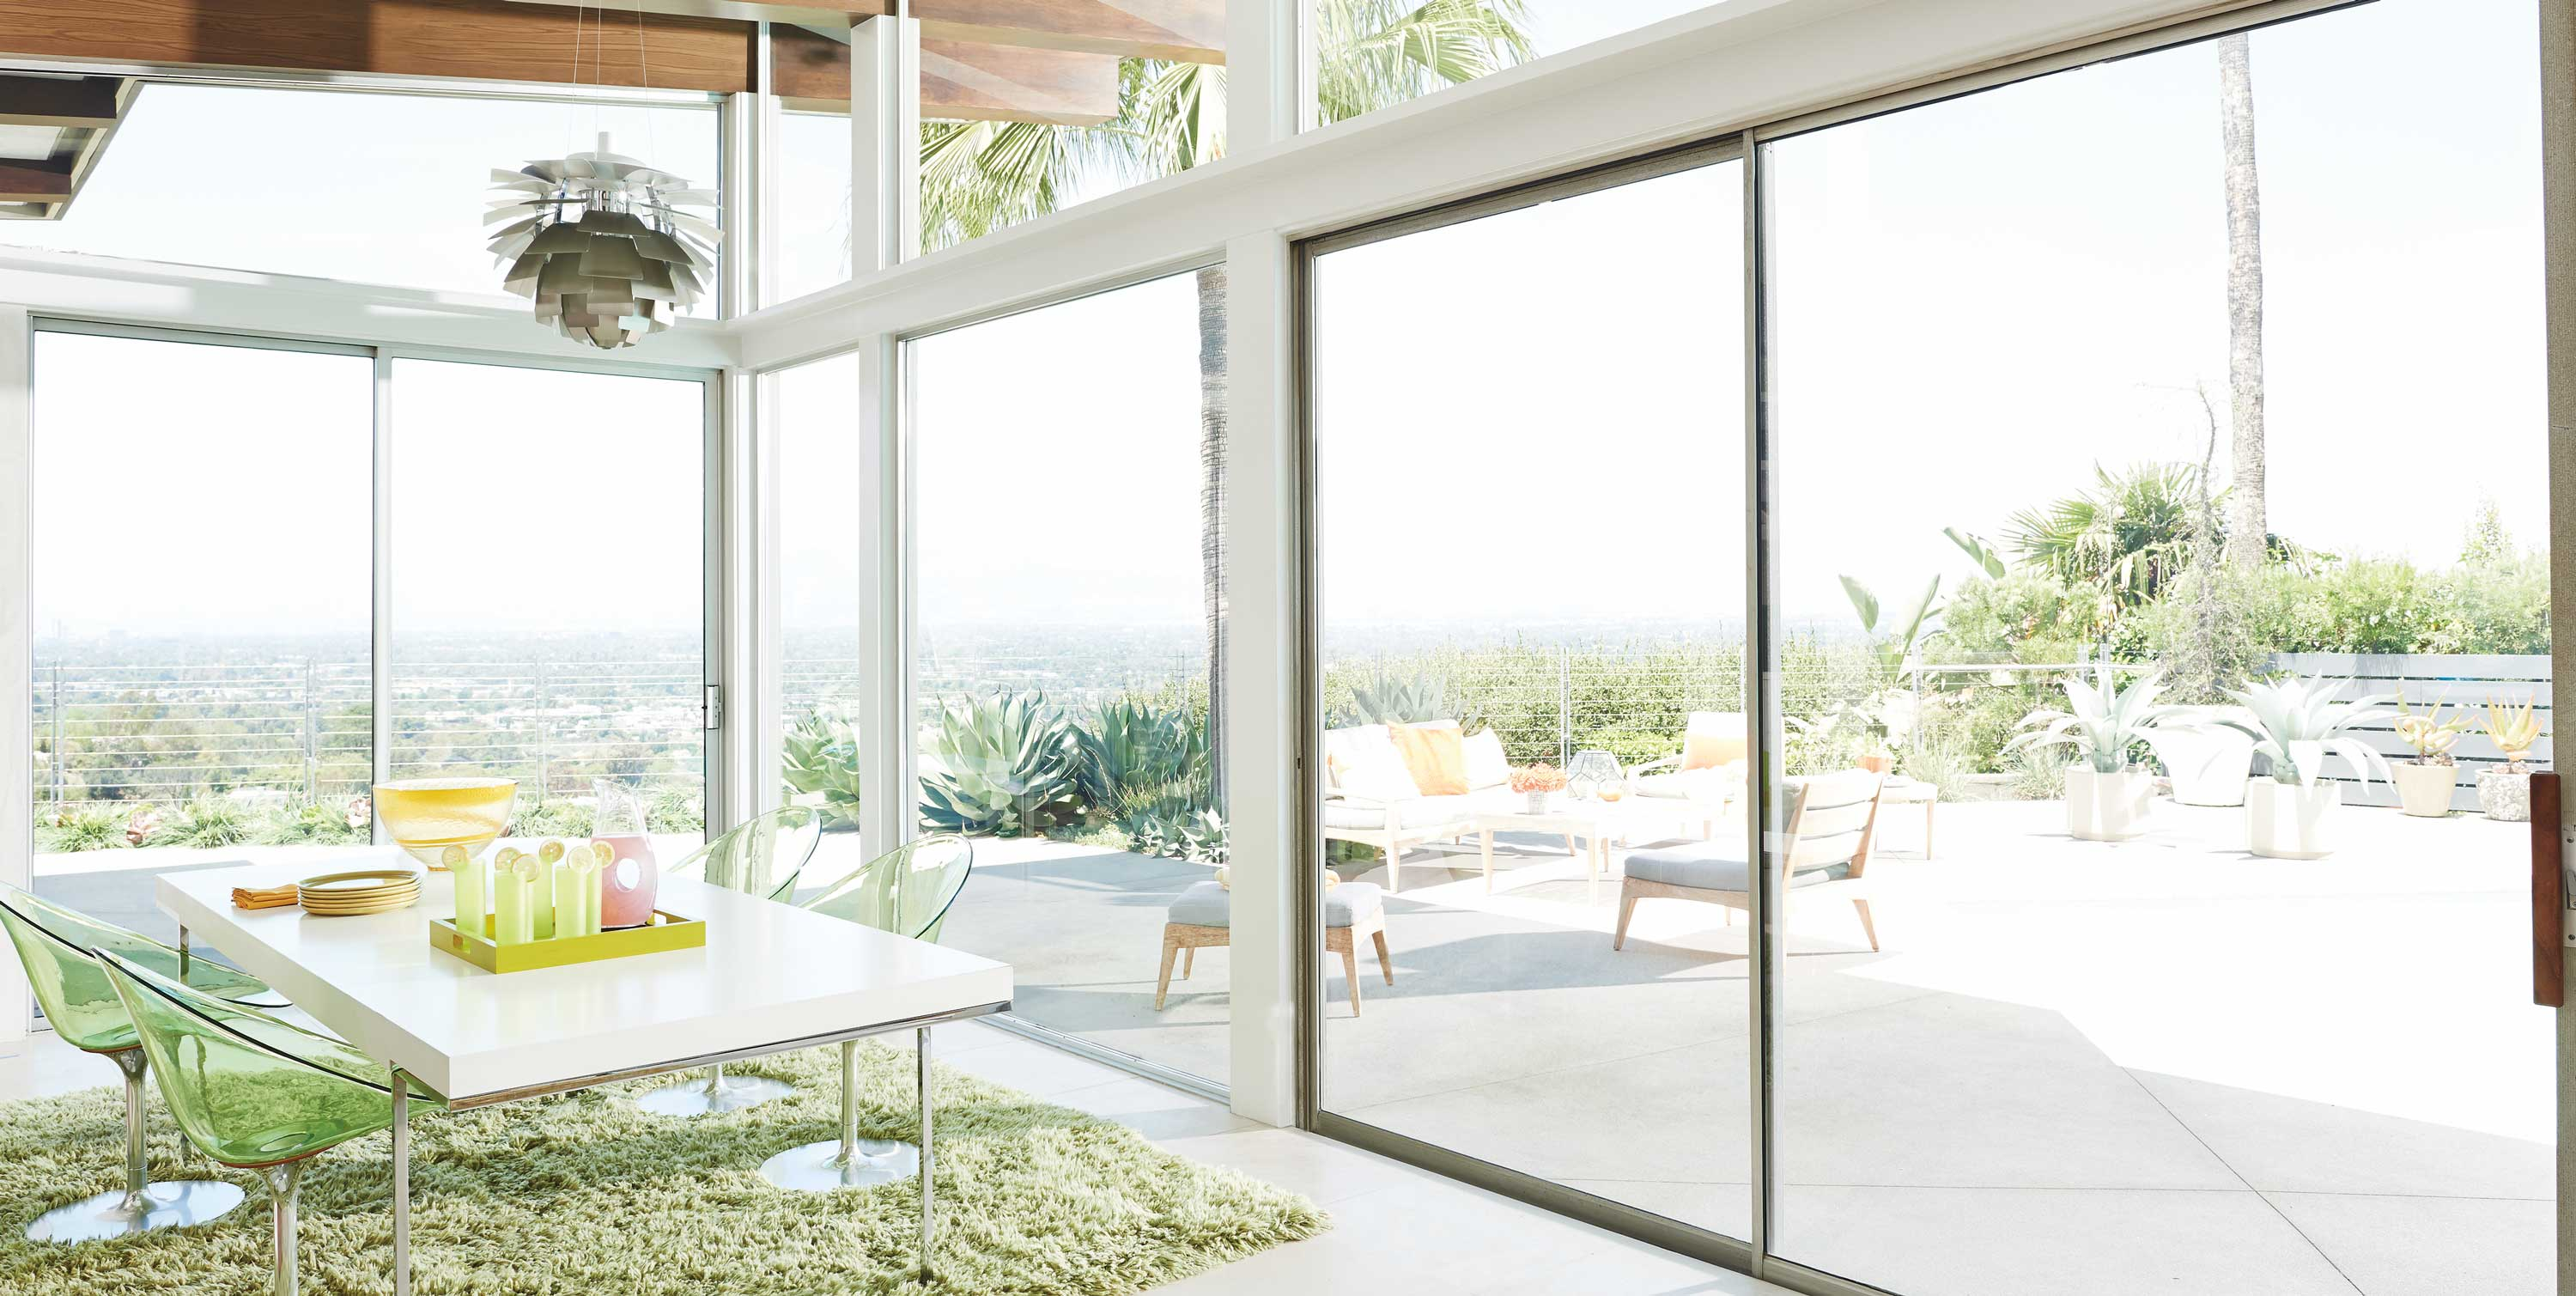 Windows and sliding glass door without Vignette.